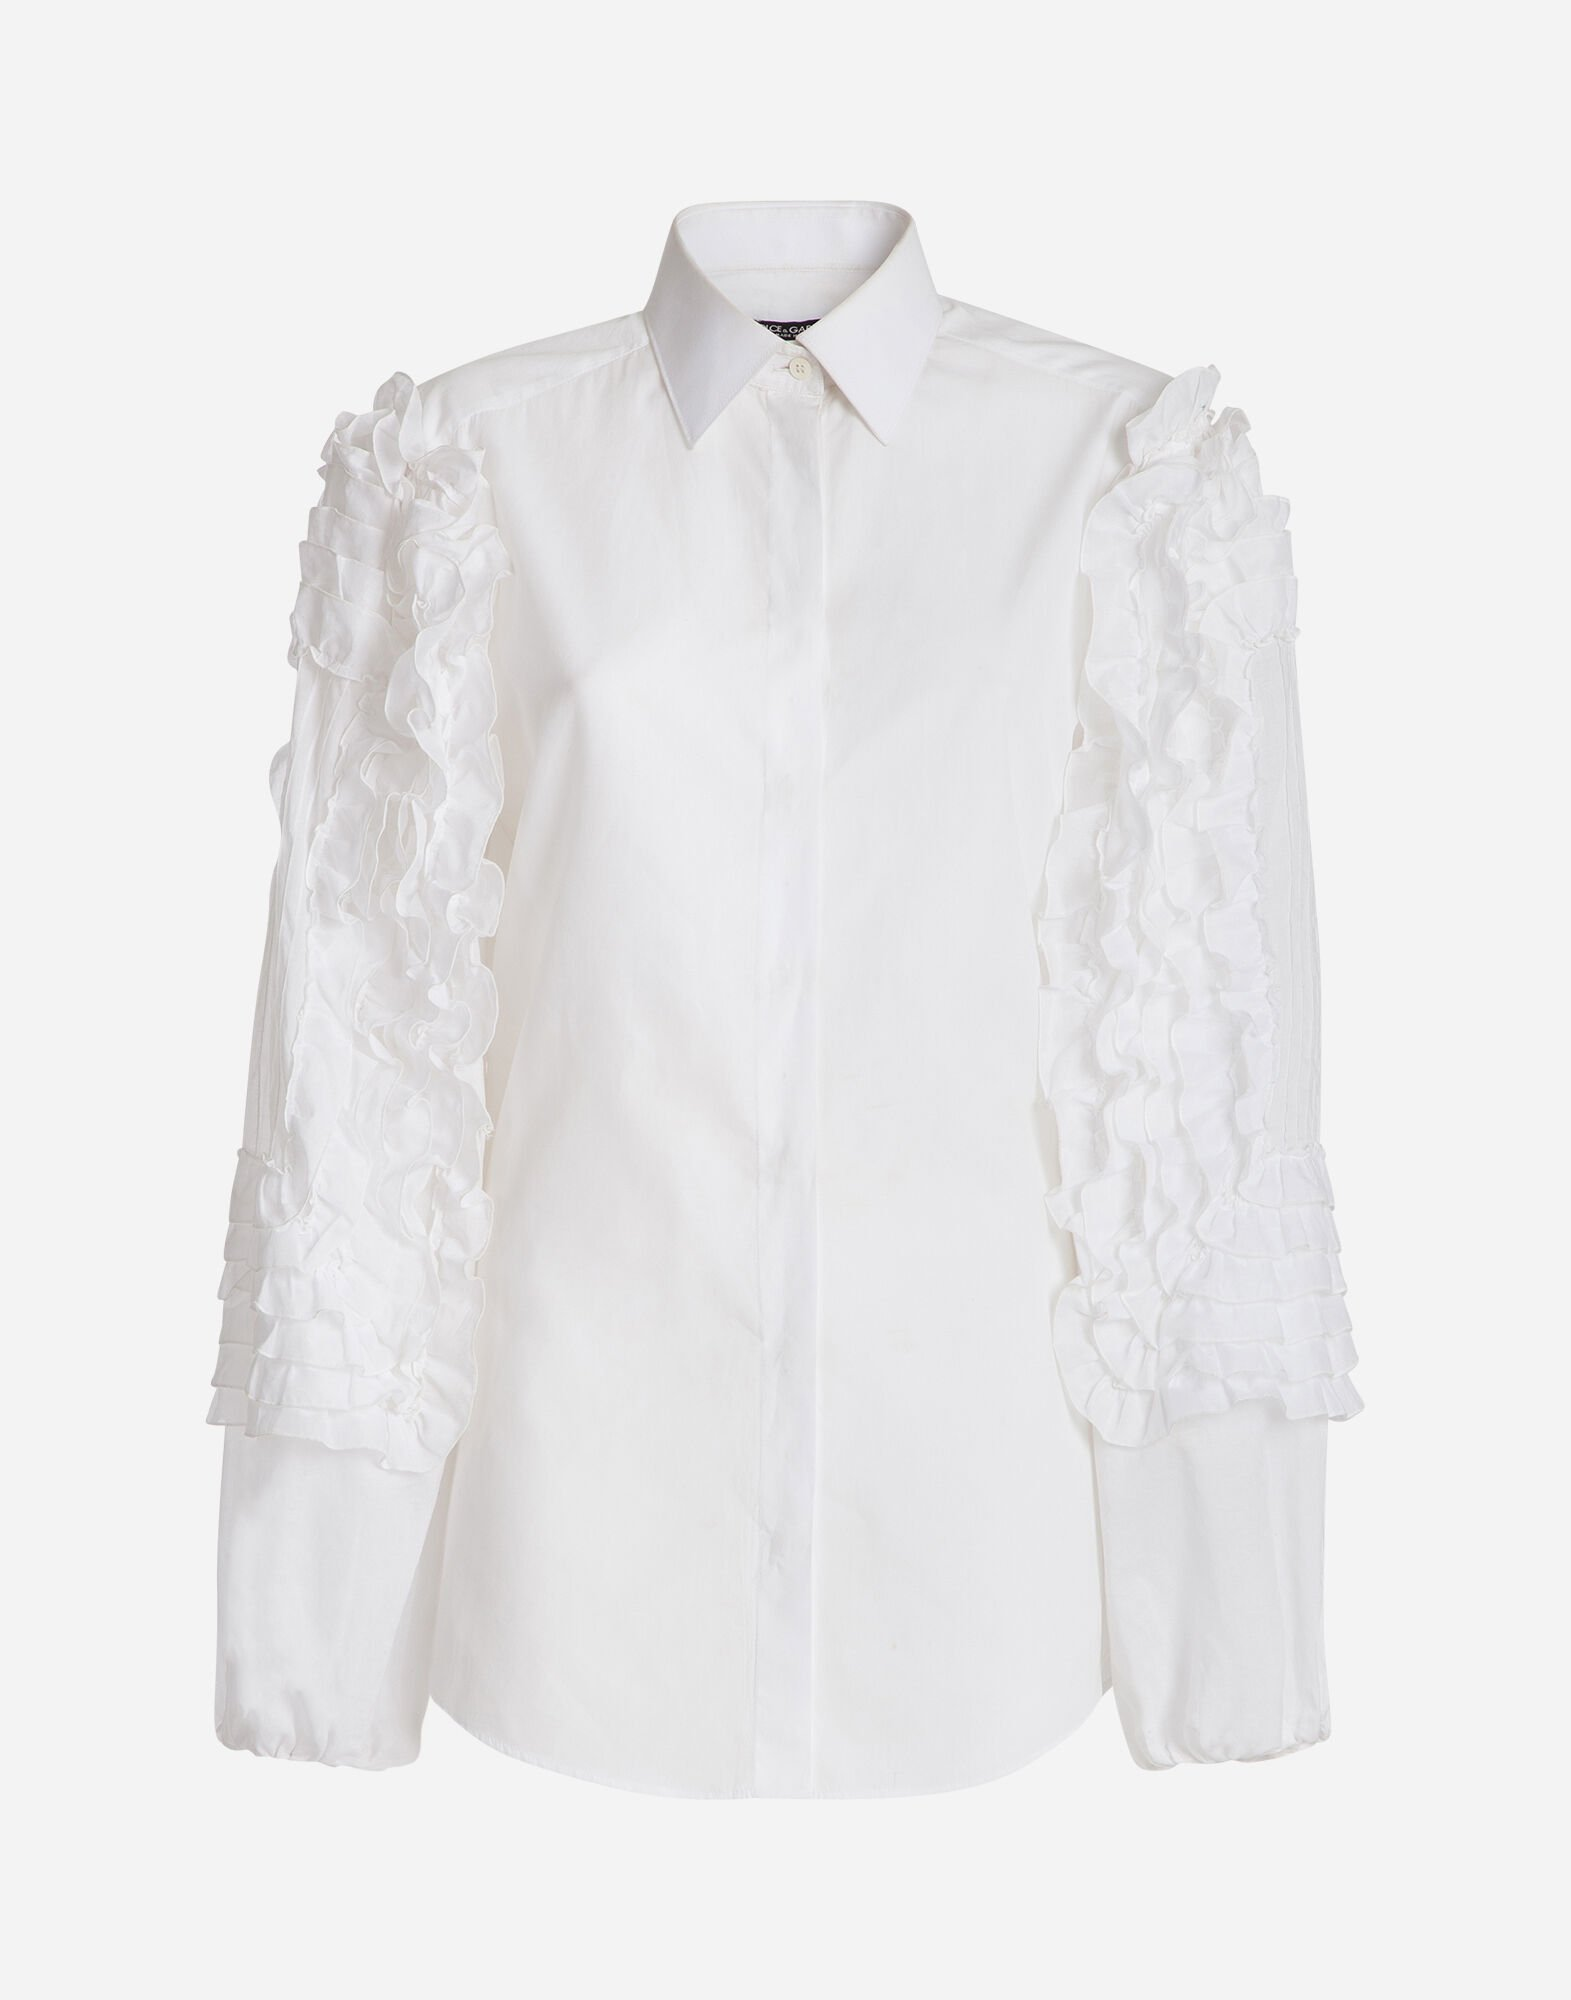 COTTON SHIRT WITH RUCHE DETAILS